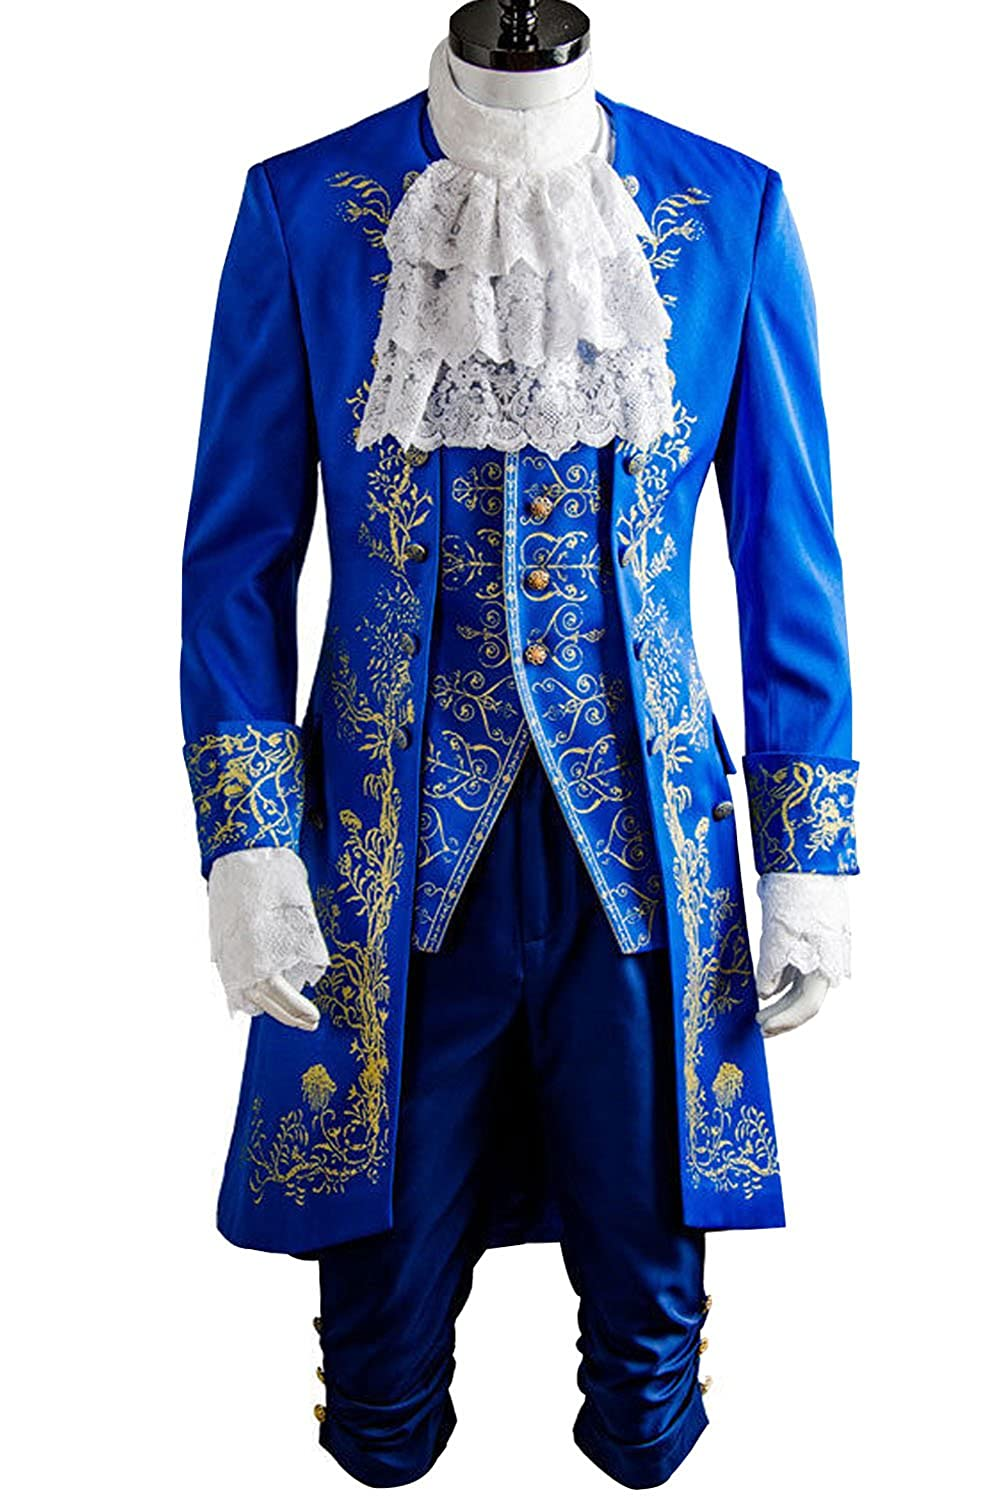 Sidnor Beauty and the Beast Prince Dan Stevens Blue Uniform Cosplay Costume Outfit Suit 2017 Live Action Movie